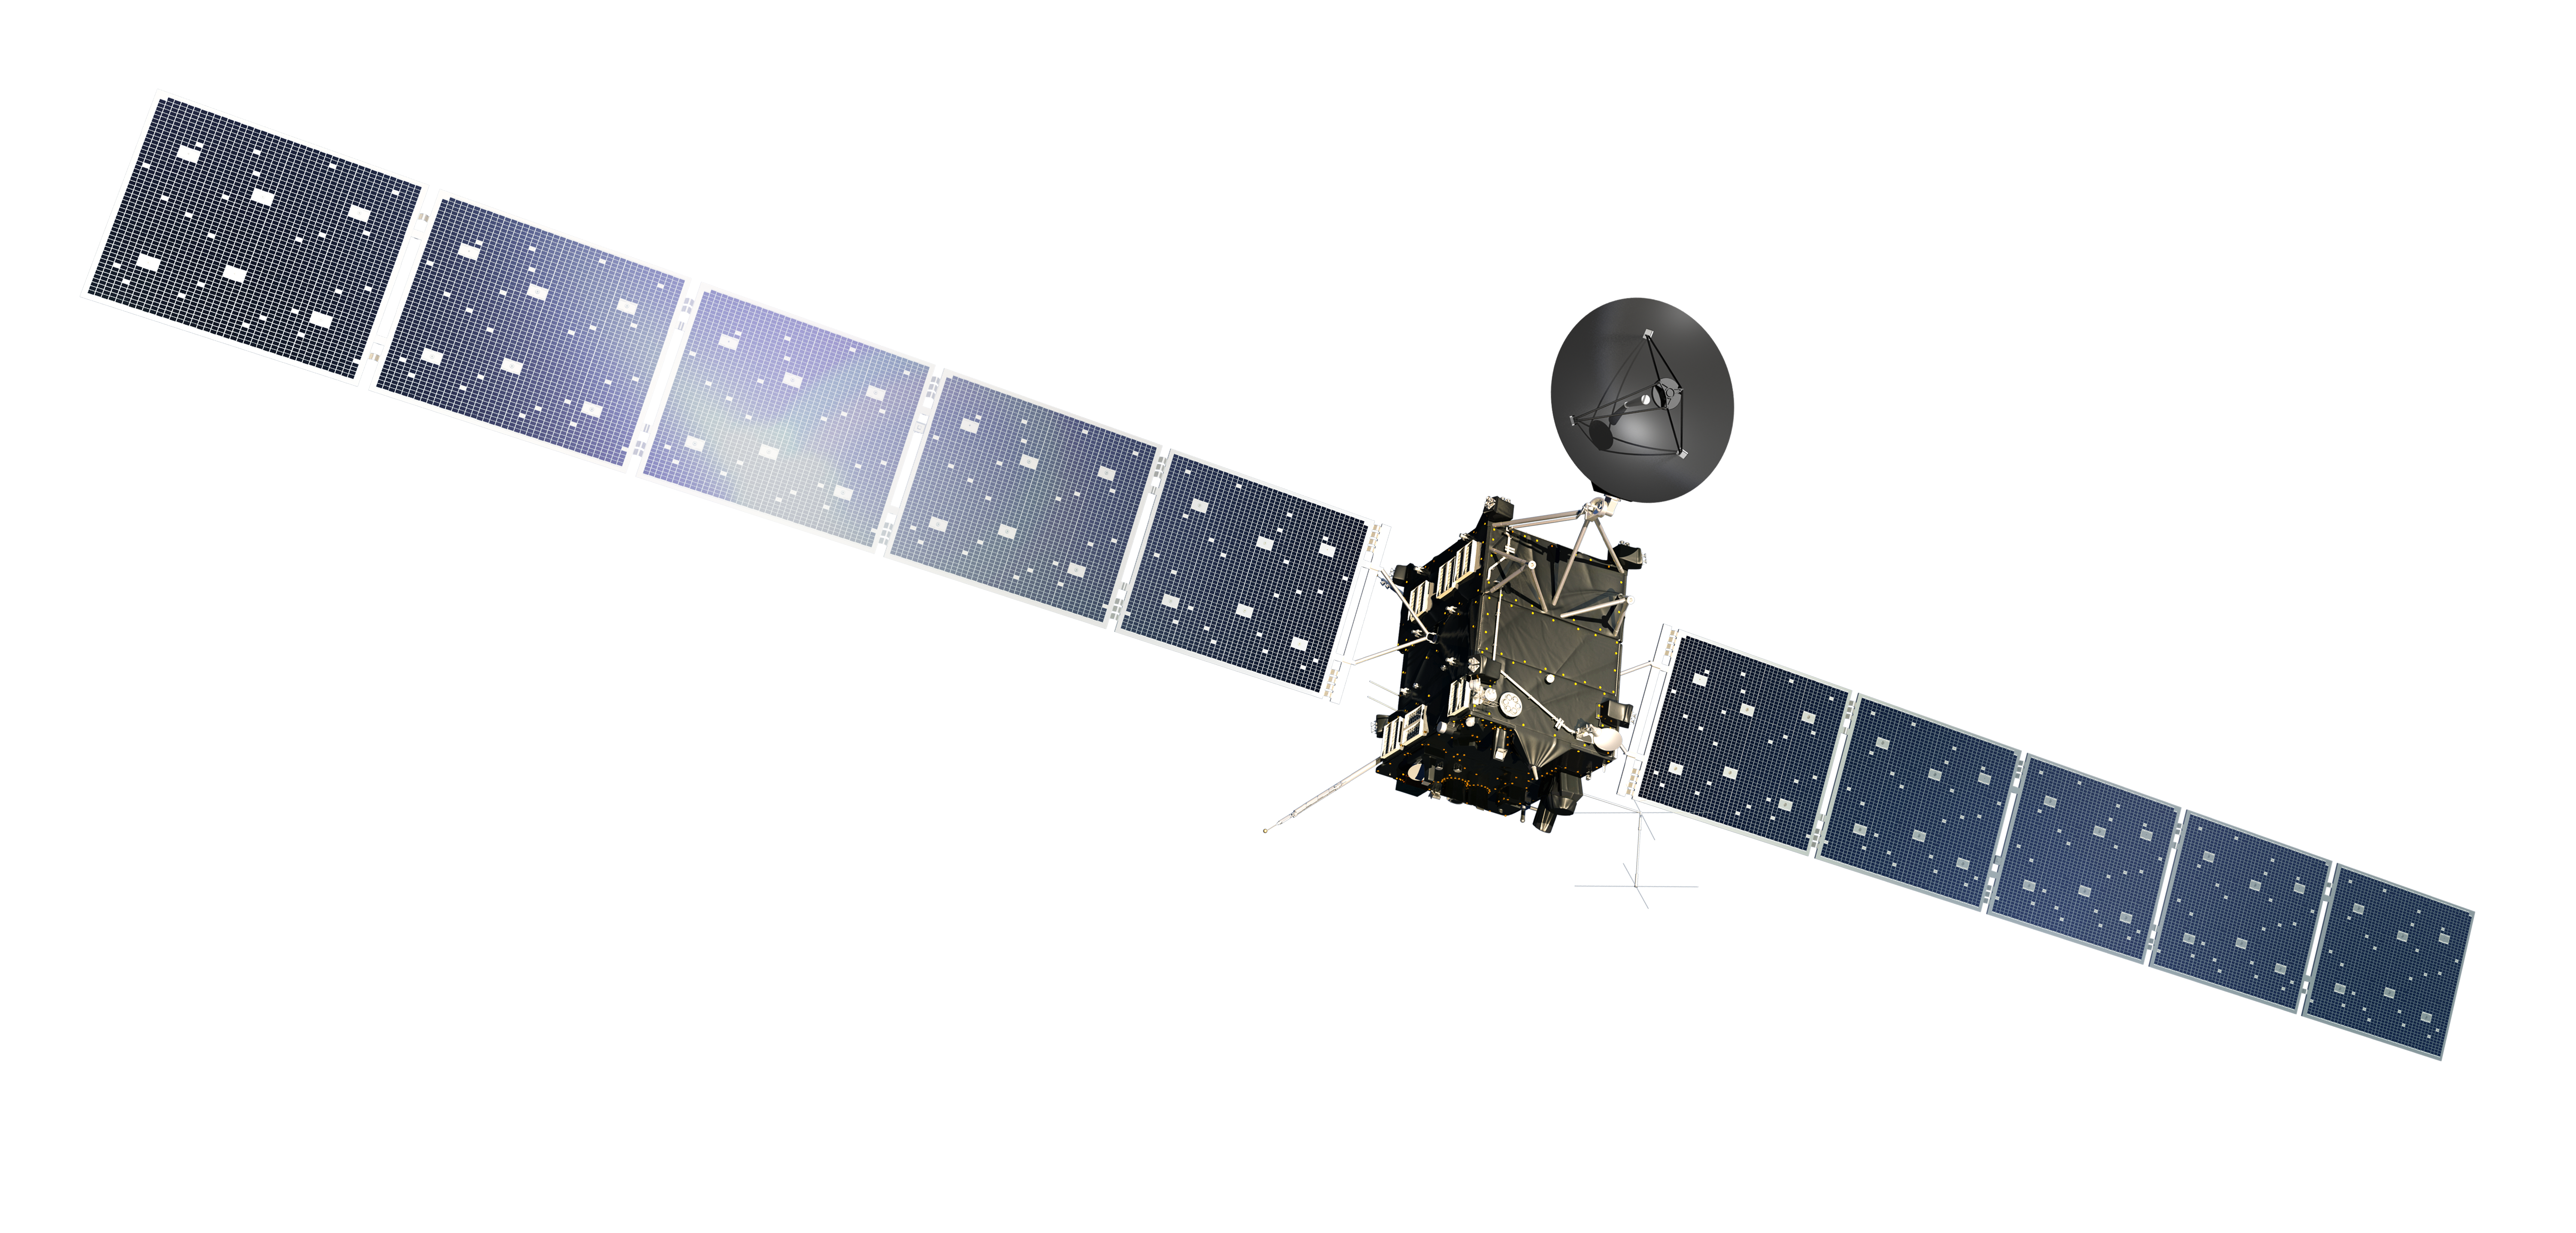 rosetta spacecraft esa logo - photo #14